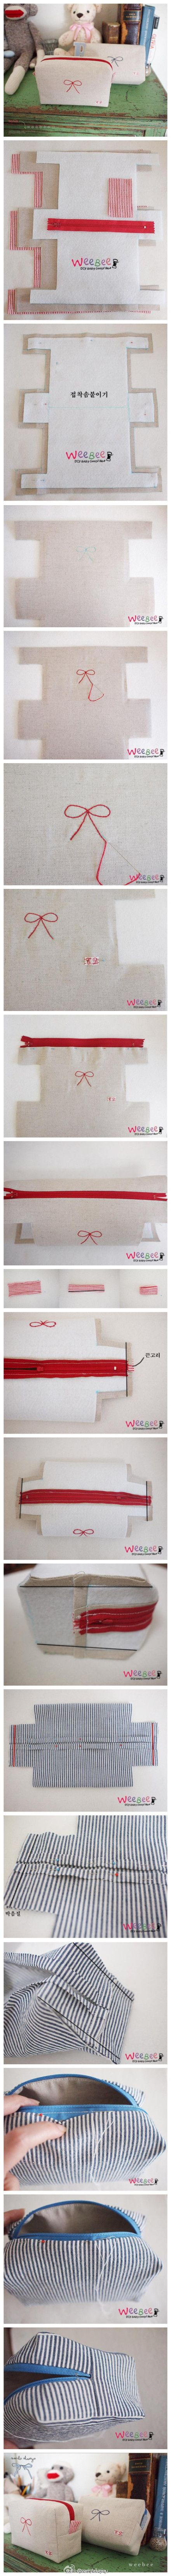 Neceser purse tutorial